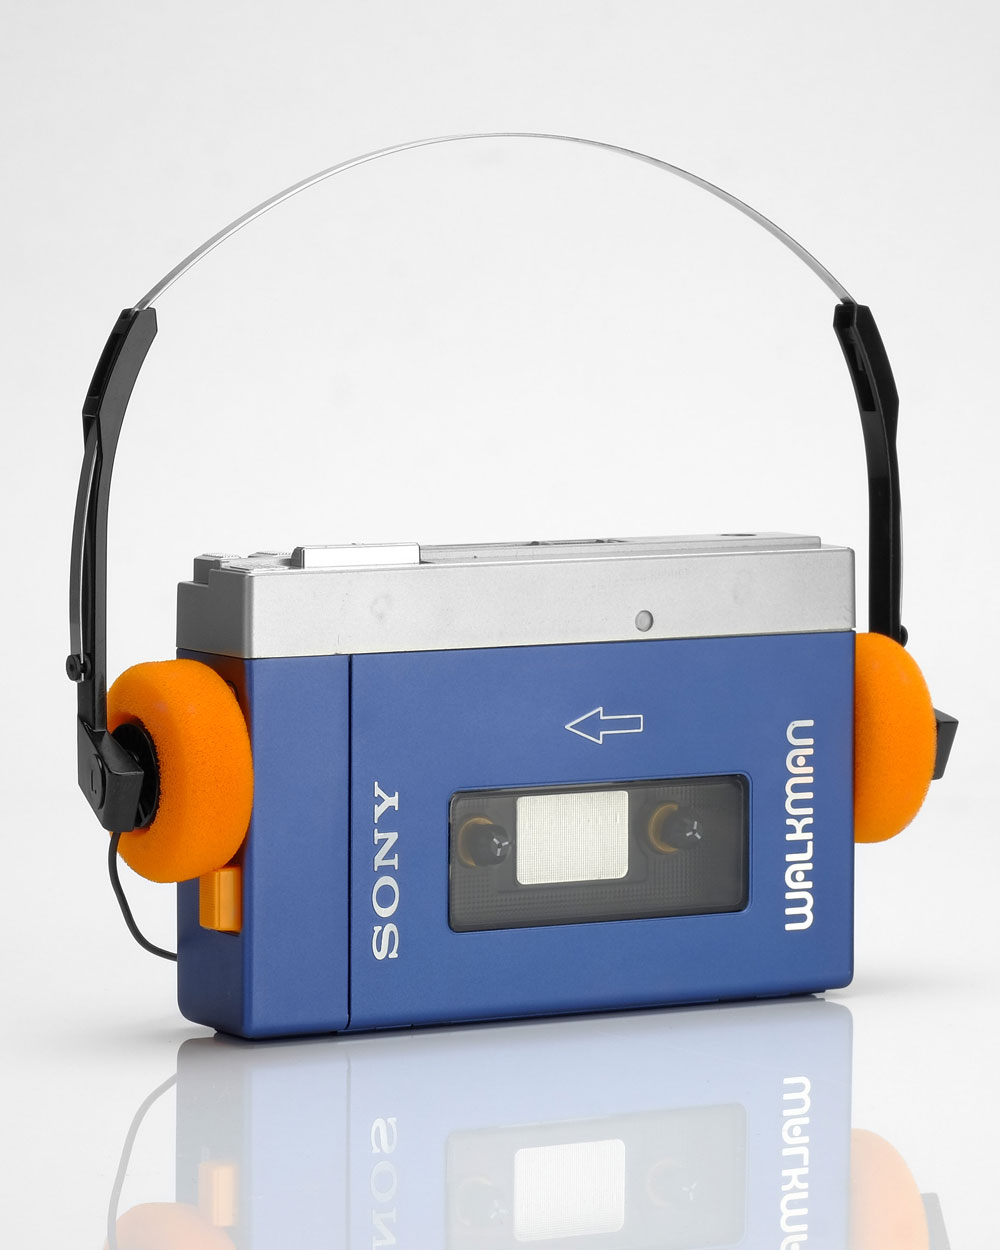 14 Facts for The Sony Walkman's 40th Anniversary – SURFACE